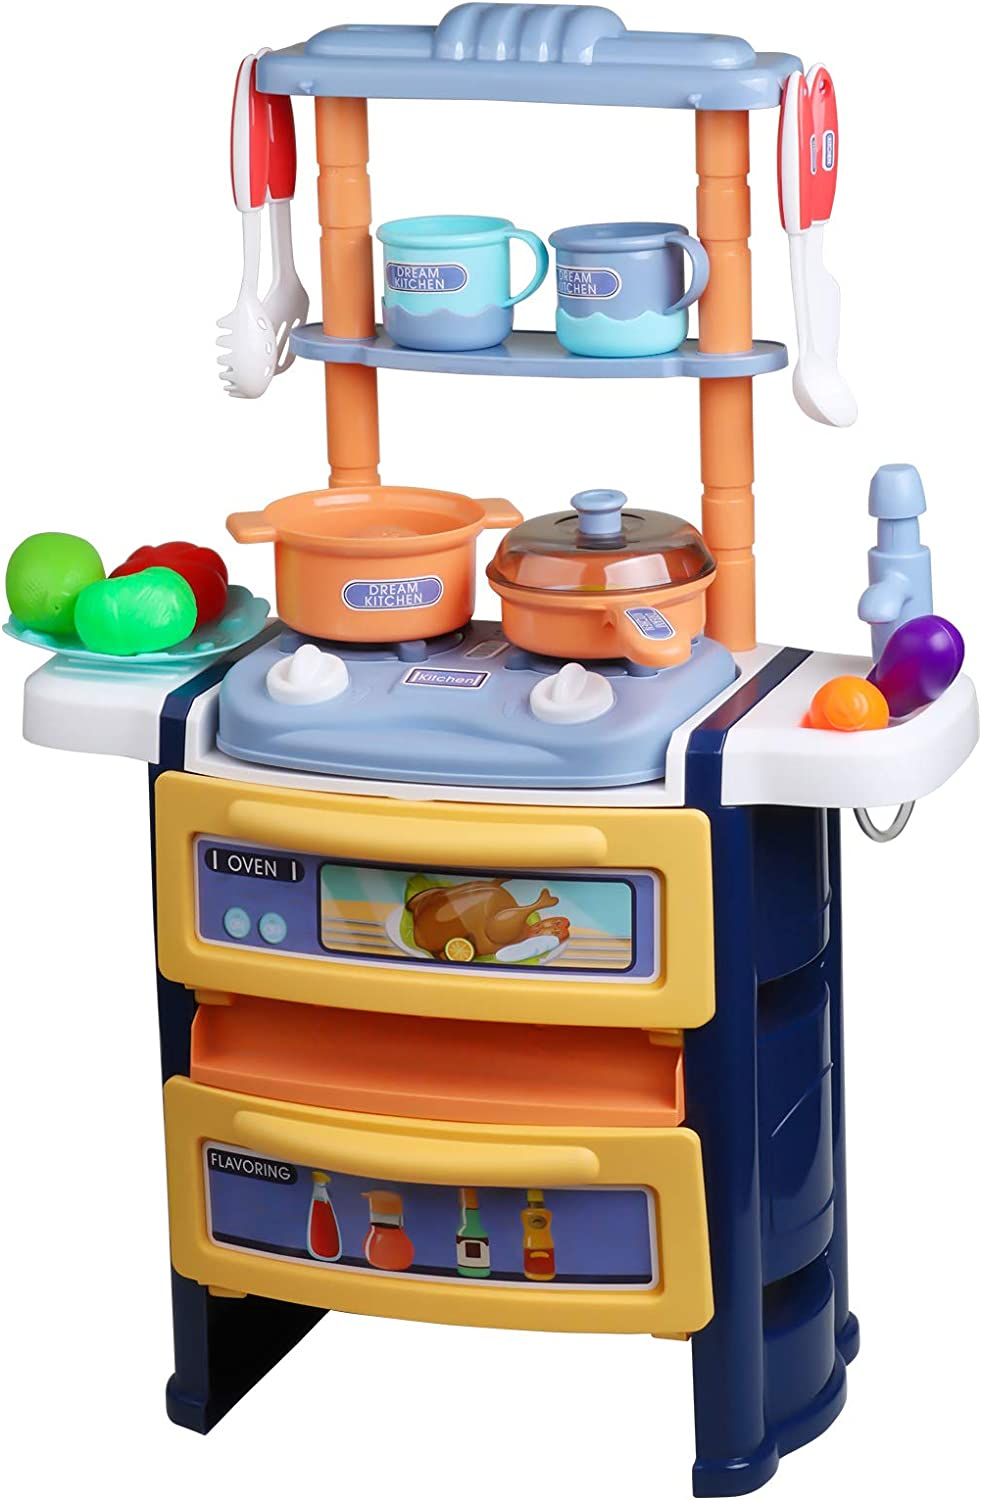 Kitchen Pretend Play Toys Kids Playset Double Layer Cutting Play Kitchen Set with Realistic Sounds and Light, Pretend Cookware ,Toy Cutlery & Food Play Kitchen Toy for Toddlers, Girls, Boys